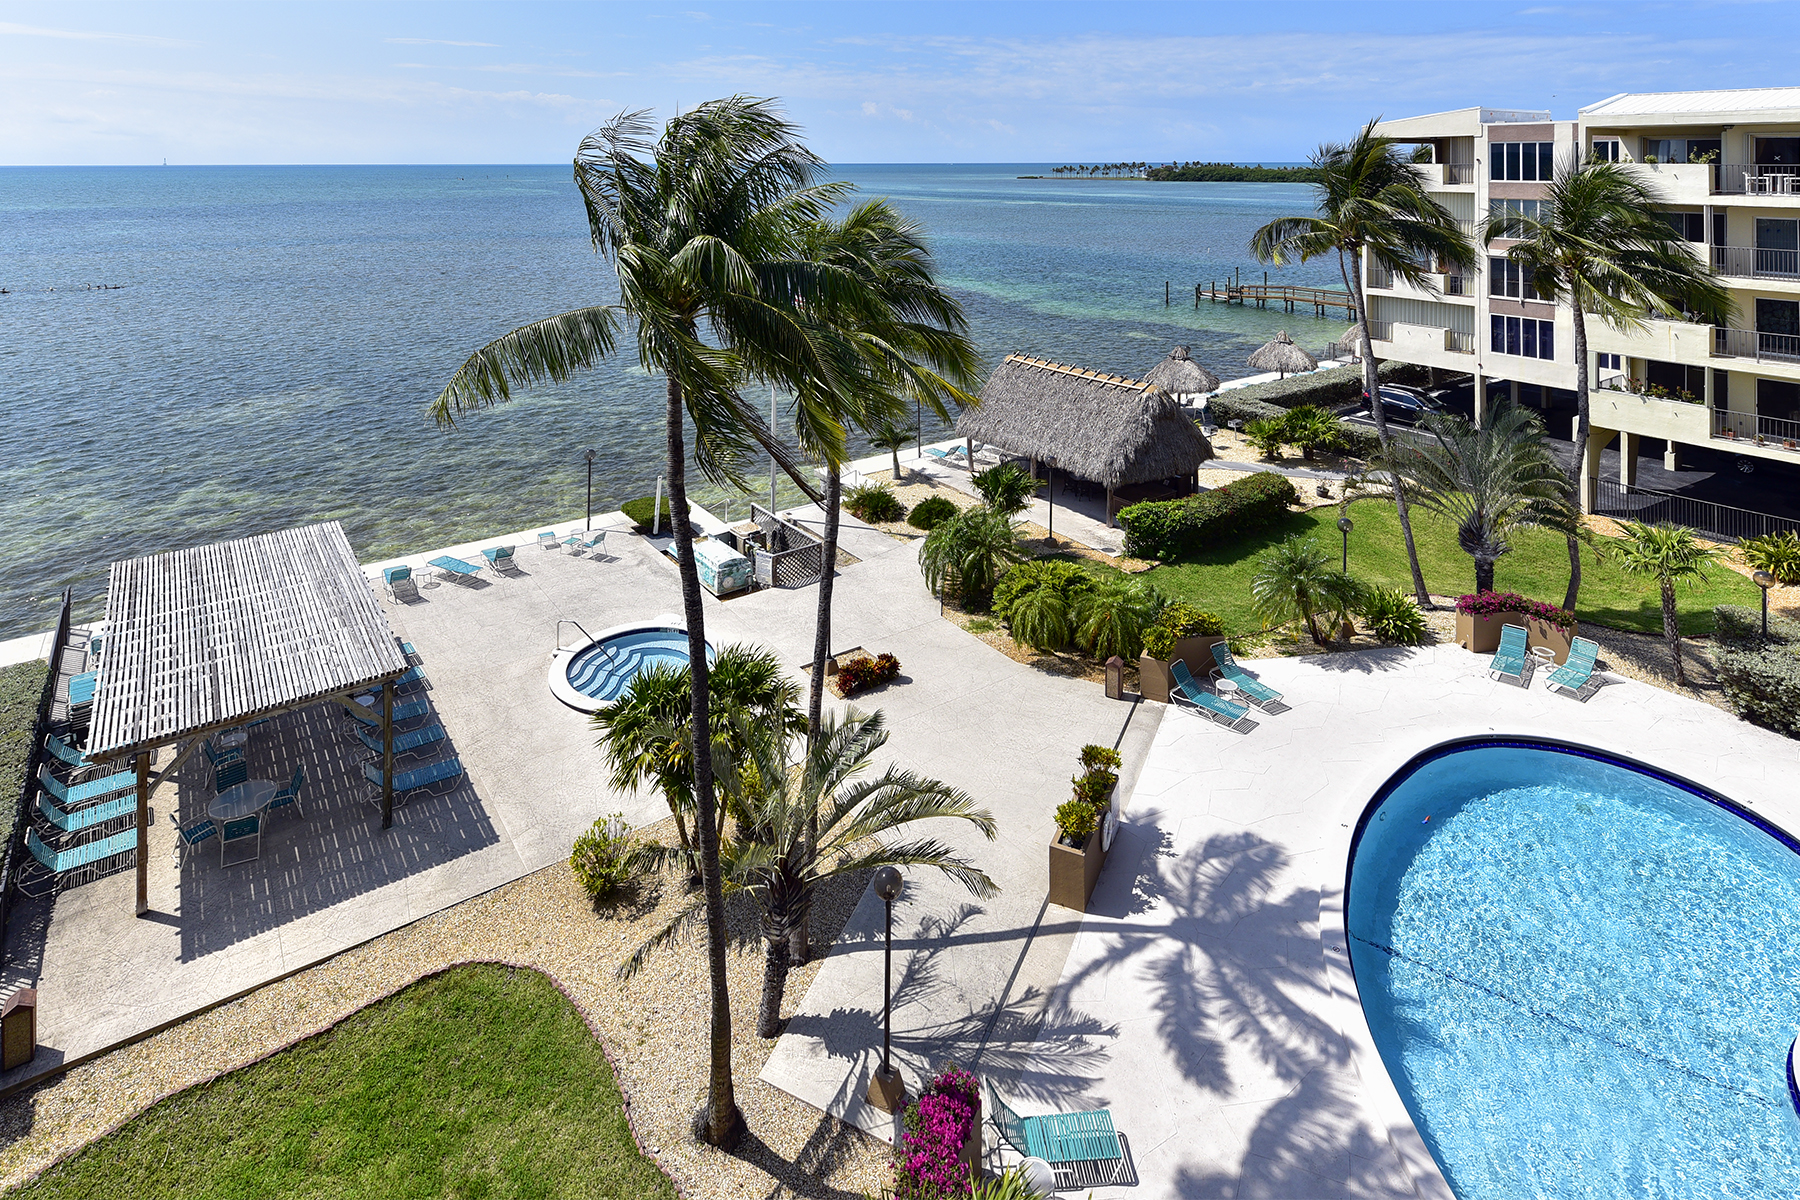 Additional photo for property listing at Oceanfront Complex 79901 Overseas Highway #519 Islamorada, Florida 33036 Vereinigte Staaten